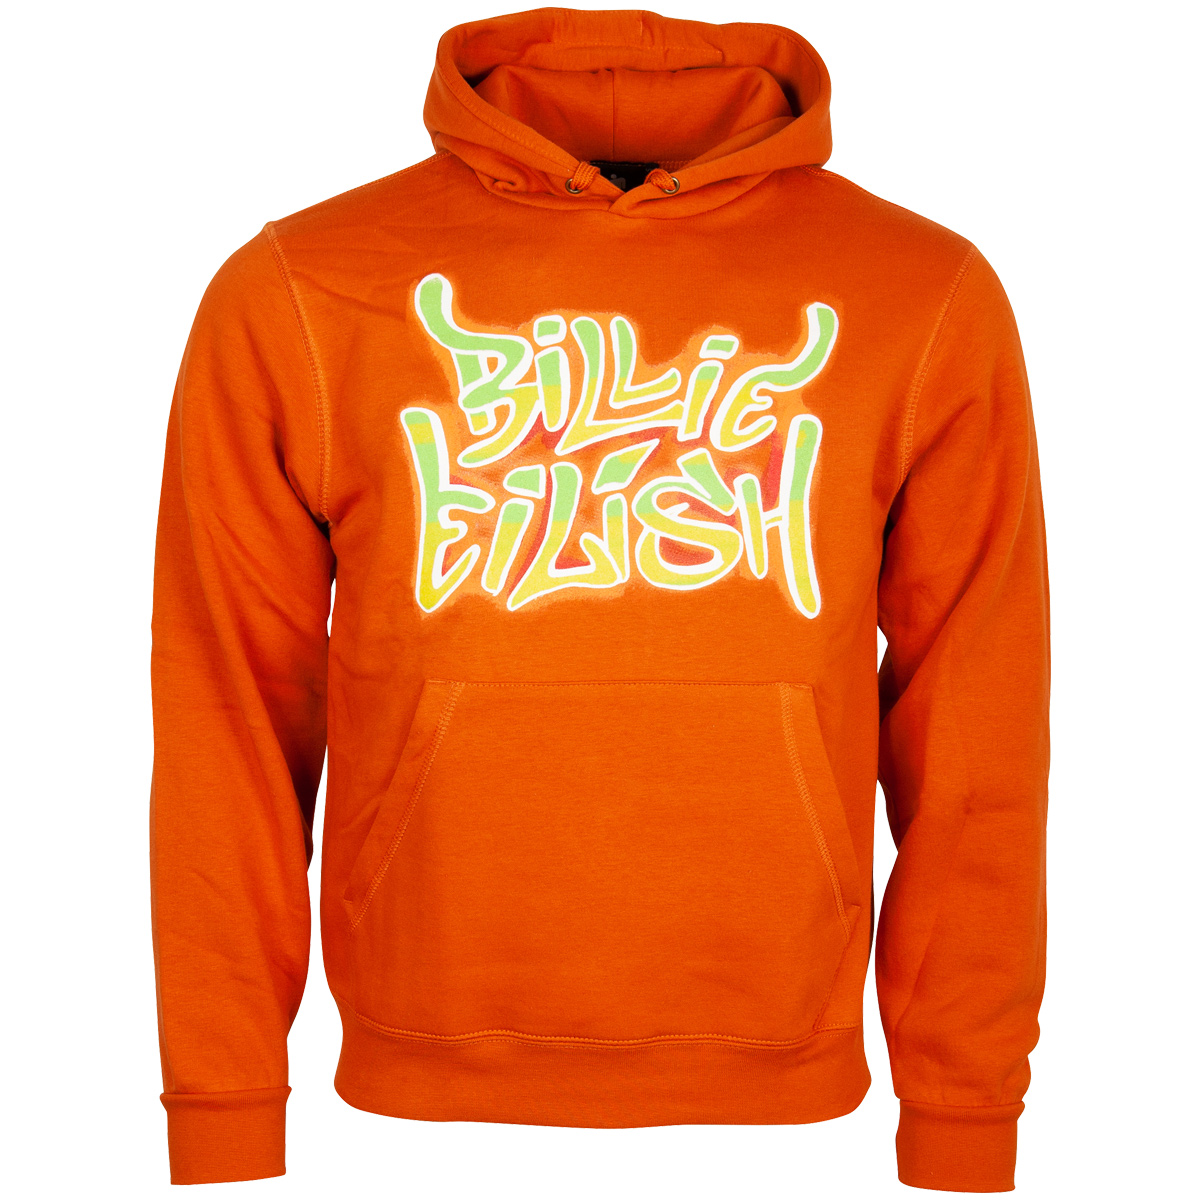 Billie Eilish - Kapuzenpullover Airbrush Flames - orange